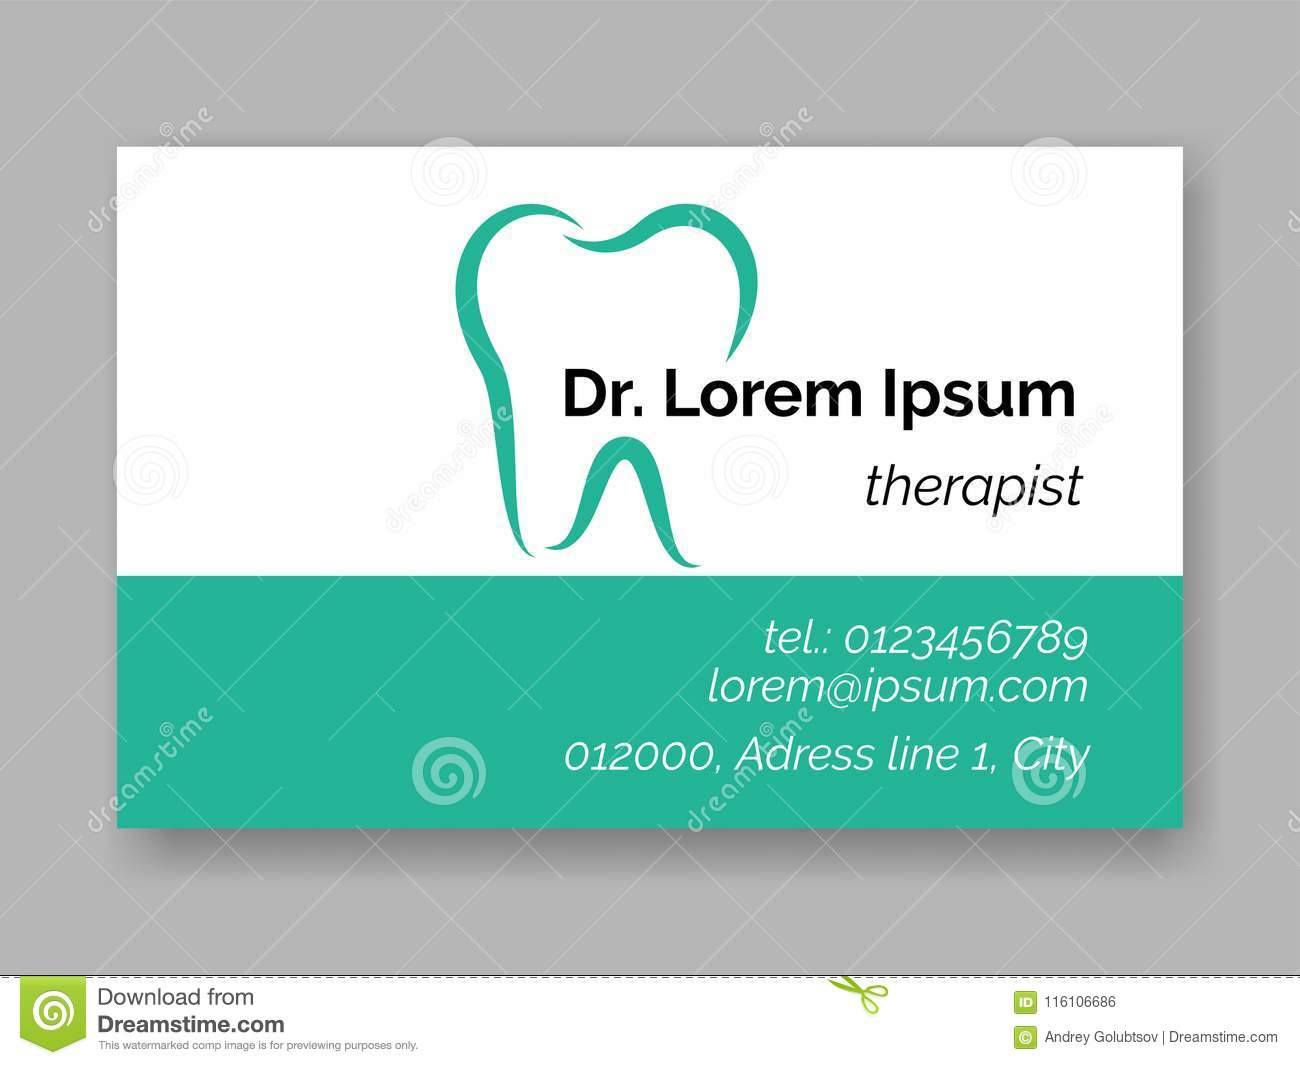 Dental tooth logo icon for dentist business card. Vector stomatology dental care design template of tooth symbol for dentistry cli